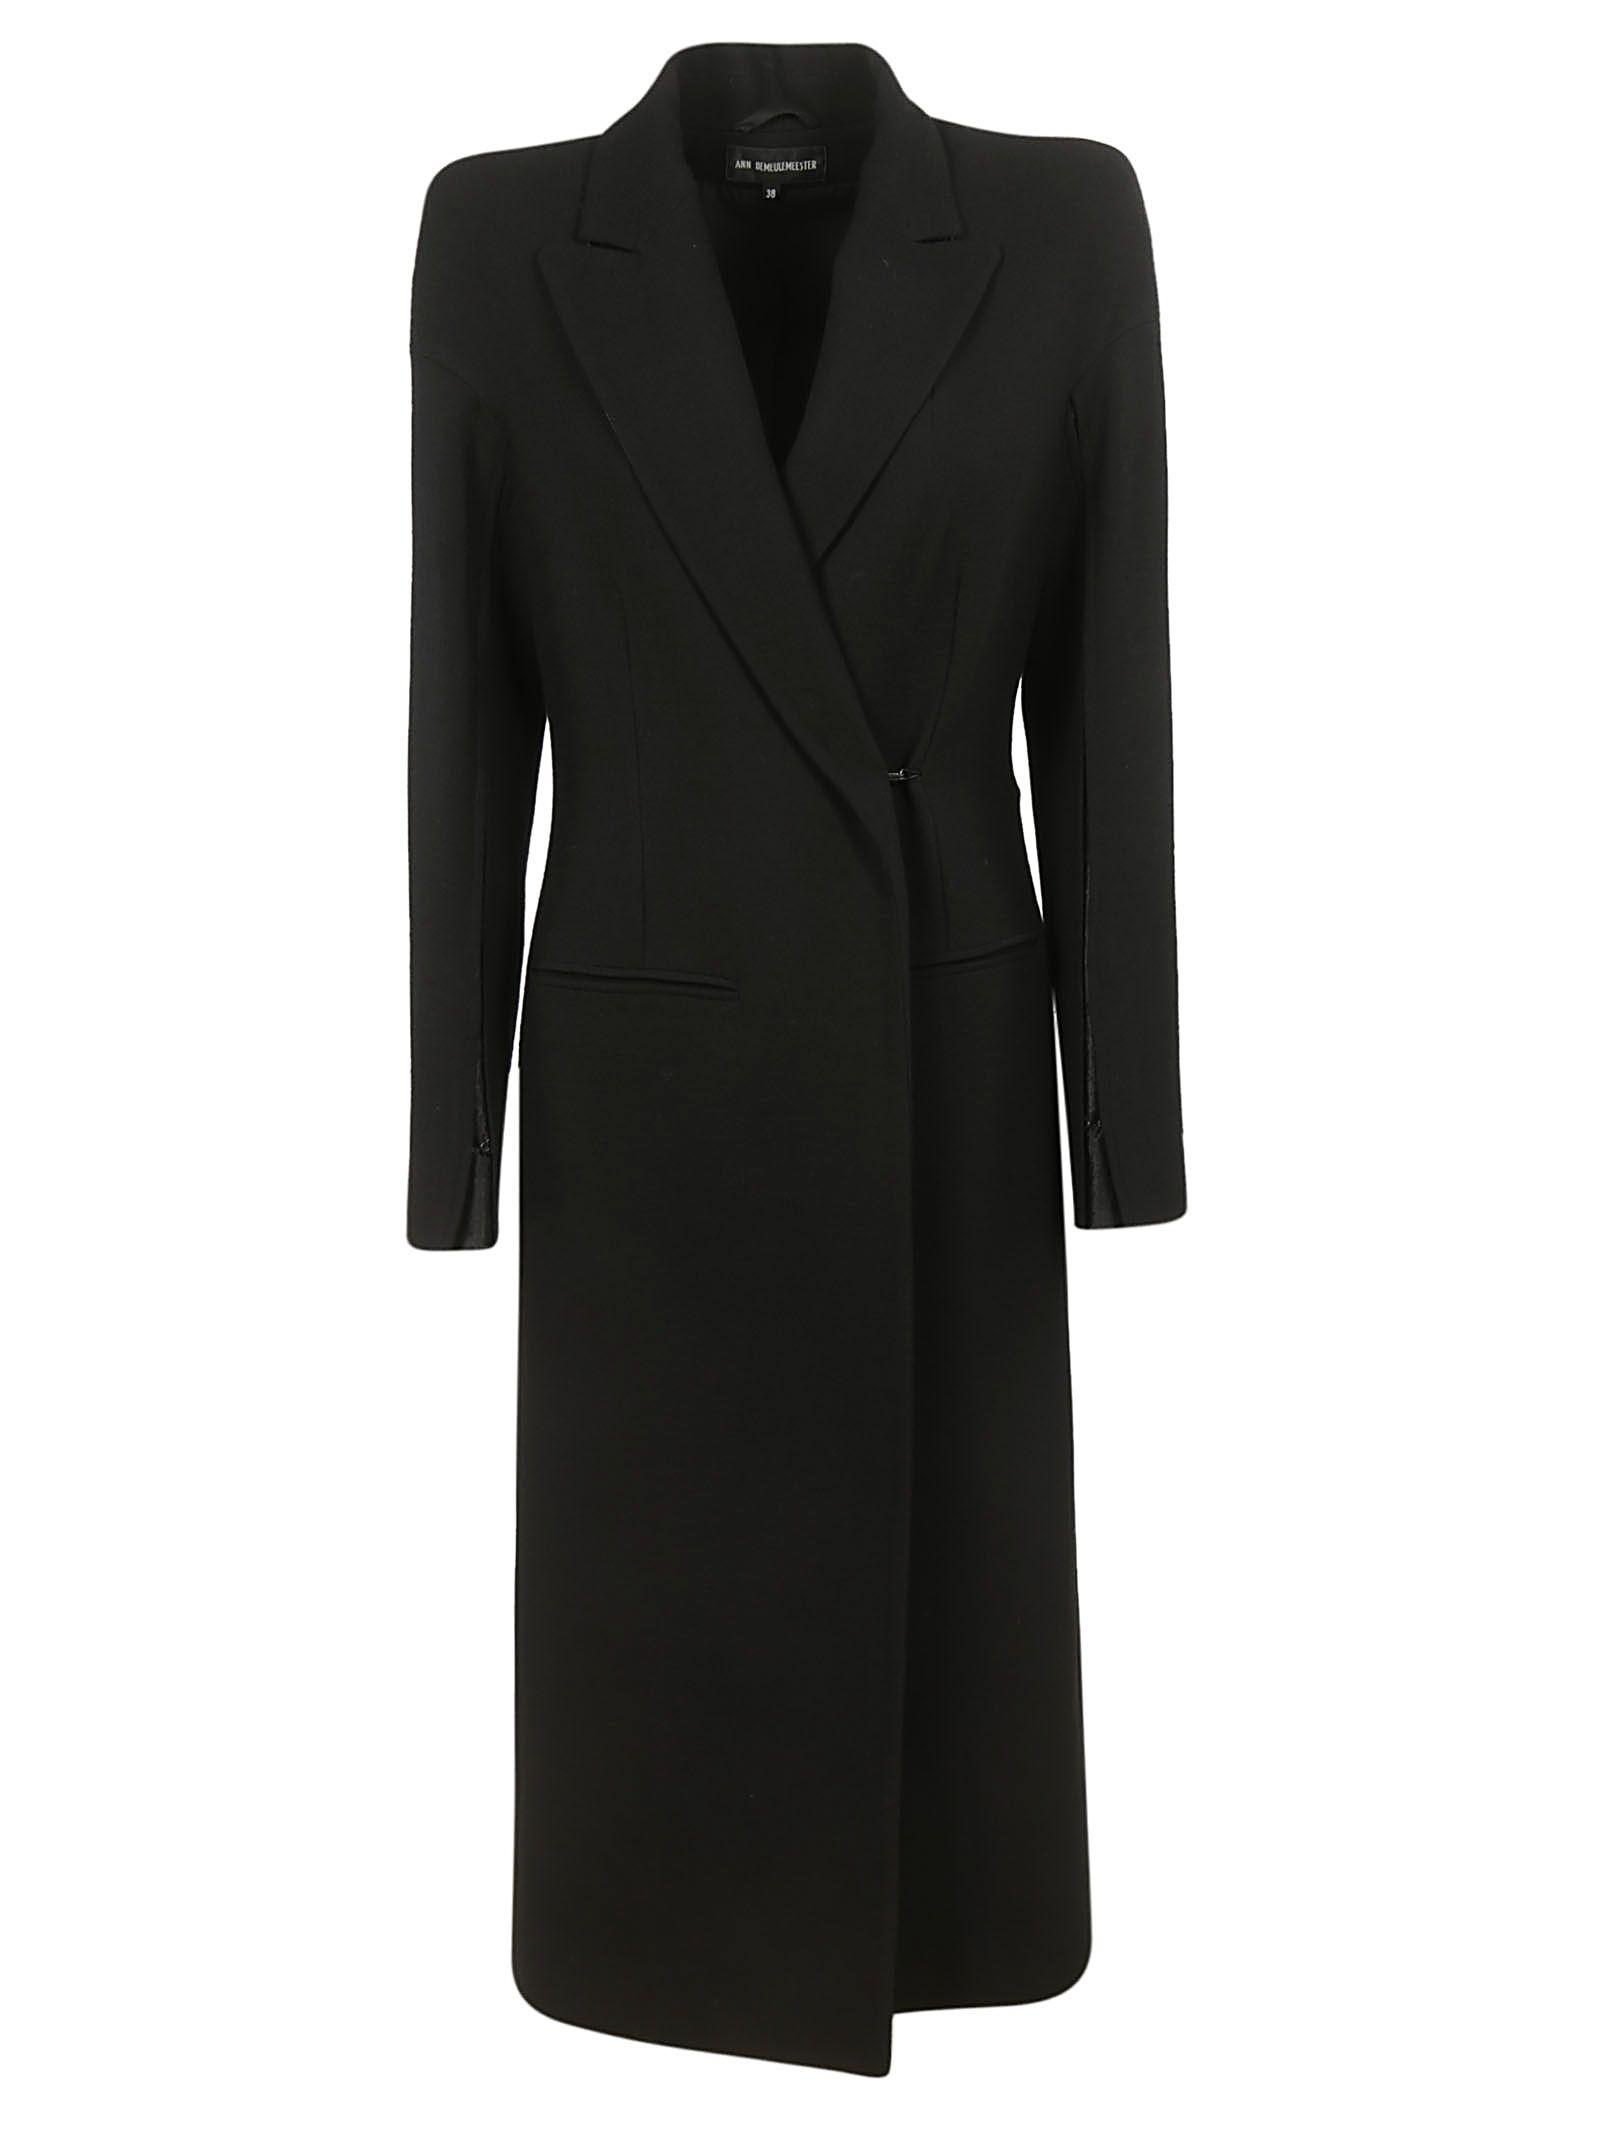 Ann Demeulemeester Single-breasted Coat In Black